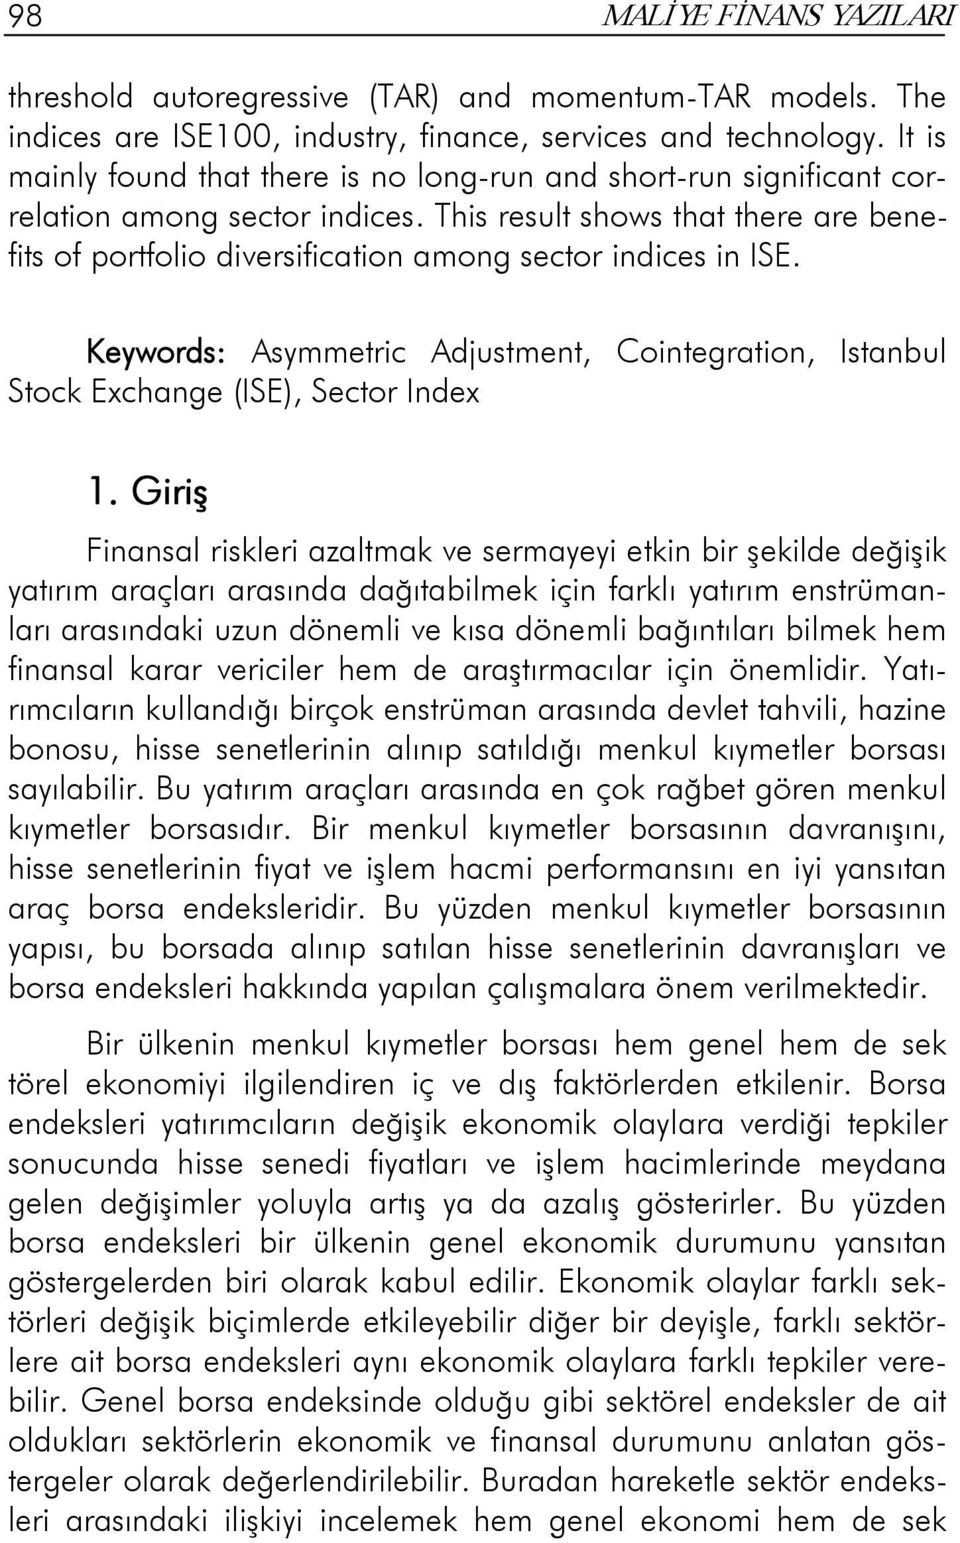 Keywords: Asymmeric Adjusmen, Coinegraion, Isanbul Sock Exchange (ISE), Secor Index 1.